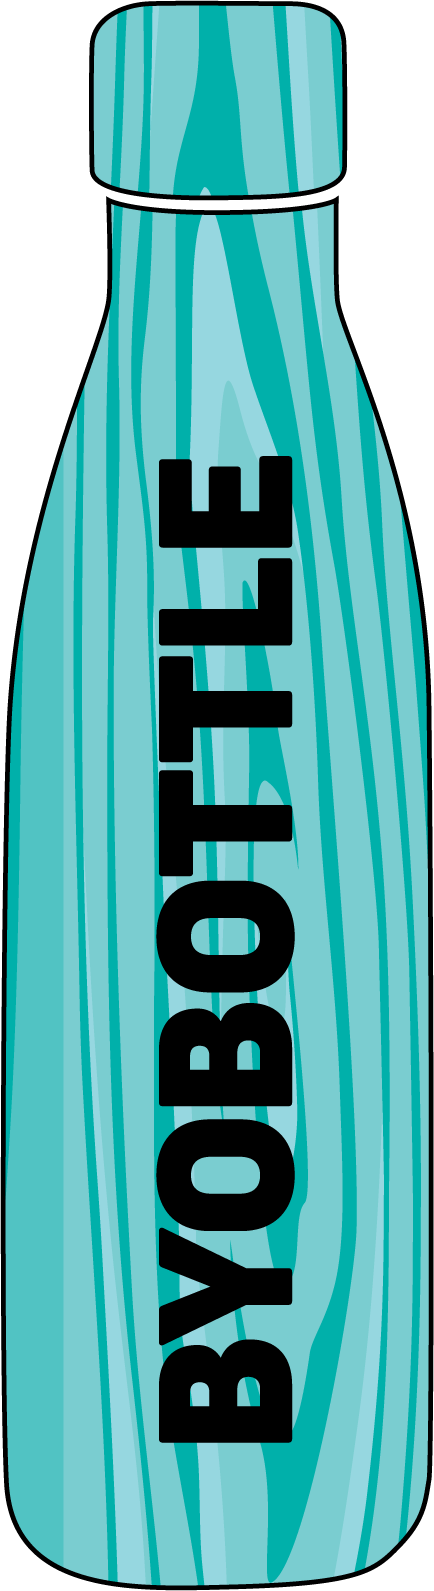 BYOB bottle campaign logo in blue